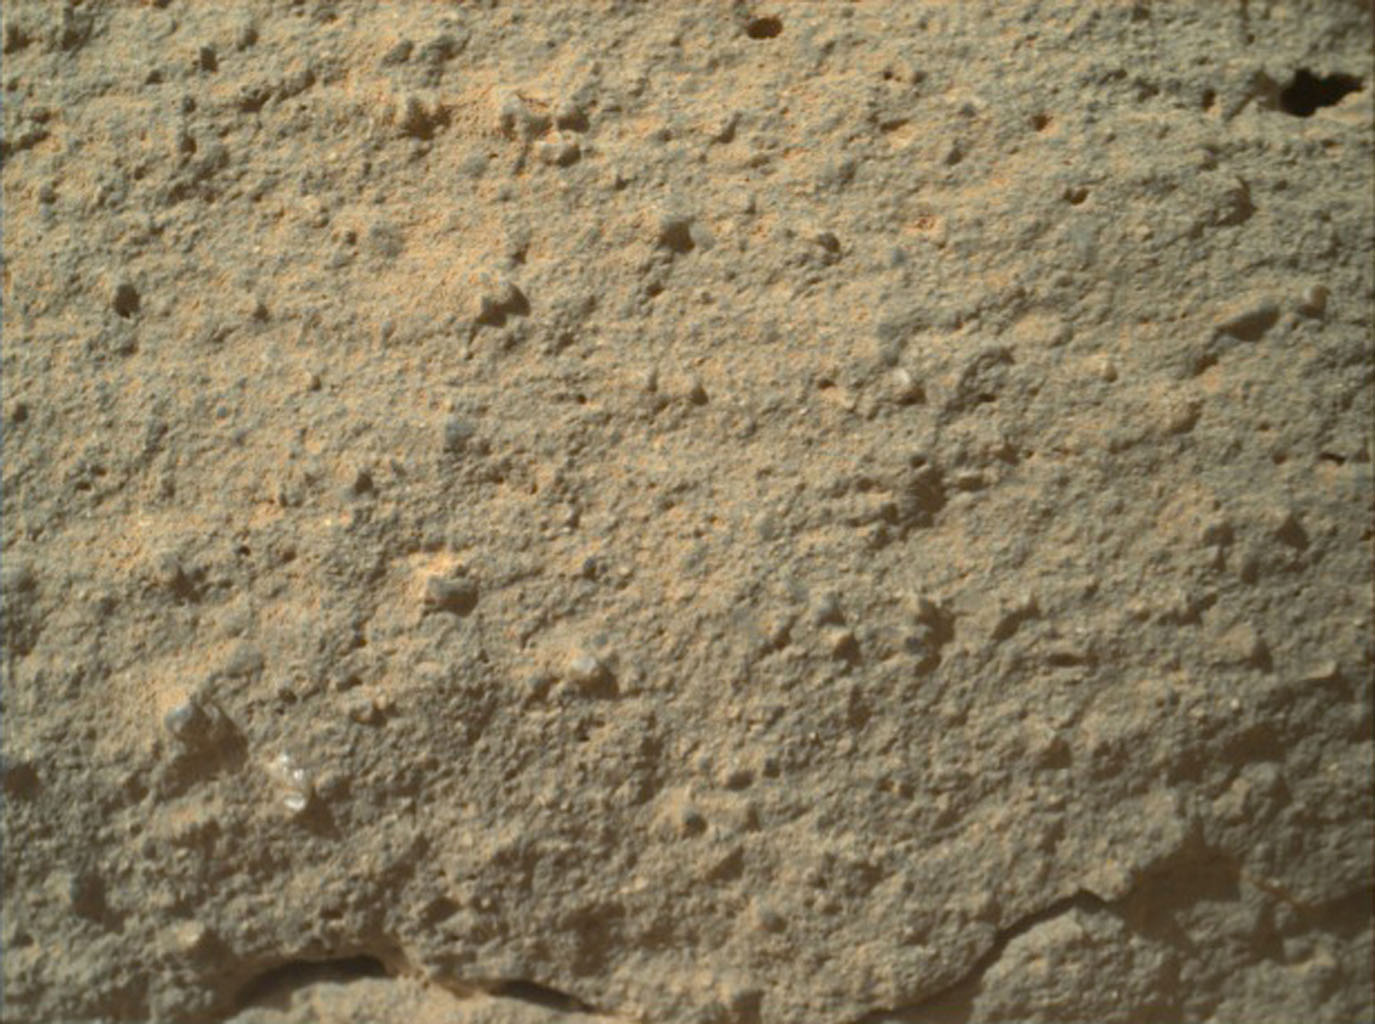 This image from NASA's Curiosity rover shows the great diversity of grains found on the surface of a Martian rock.